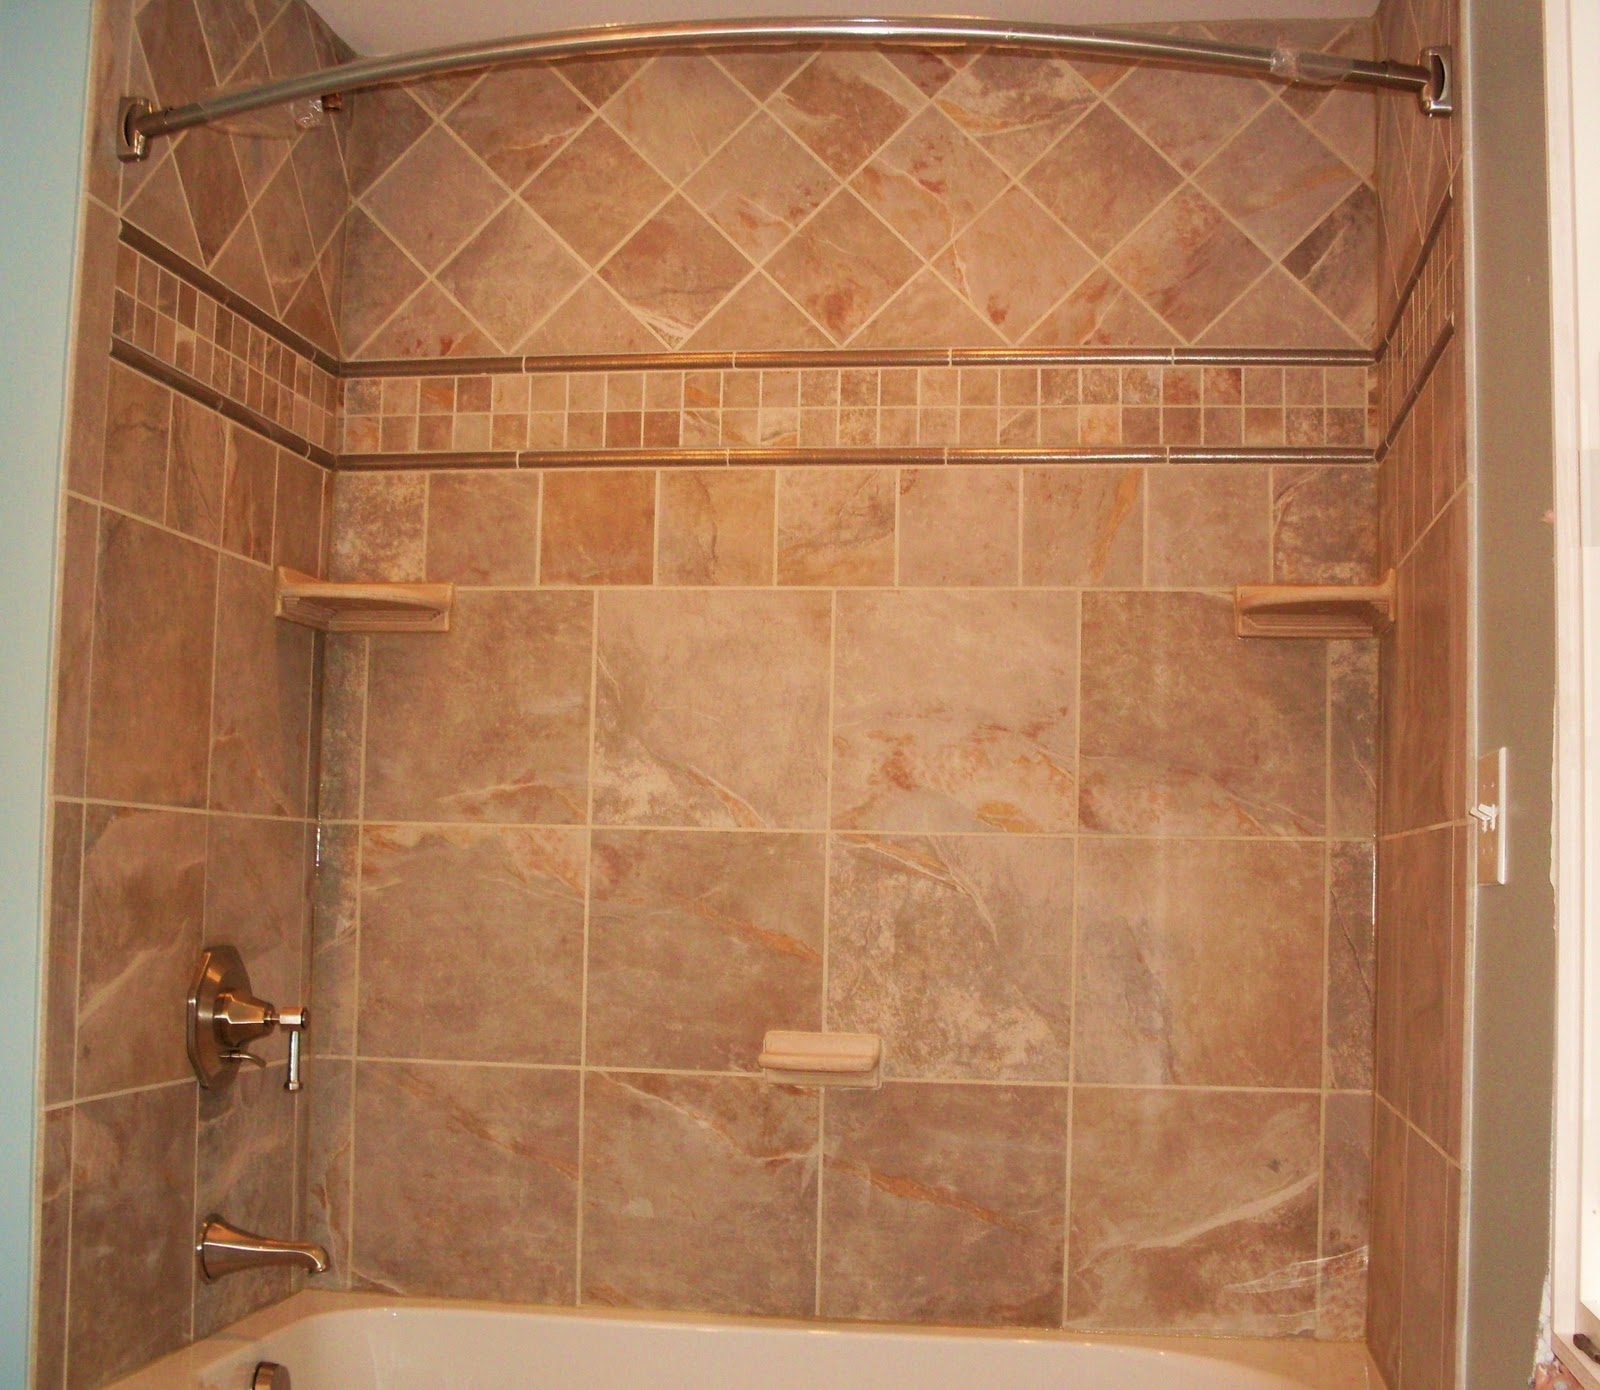 Remodel ideas on pinterest tile tub surround tub surround and tile Tile a shower